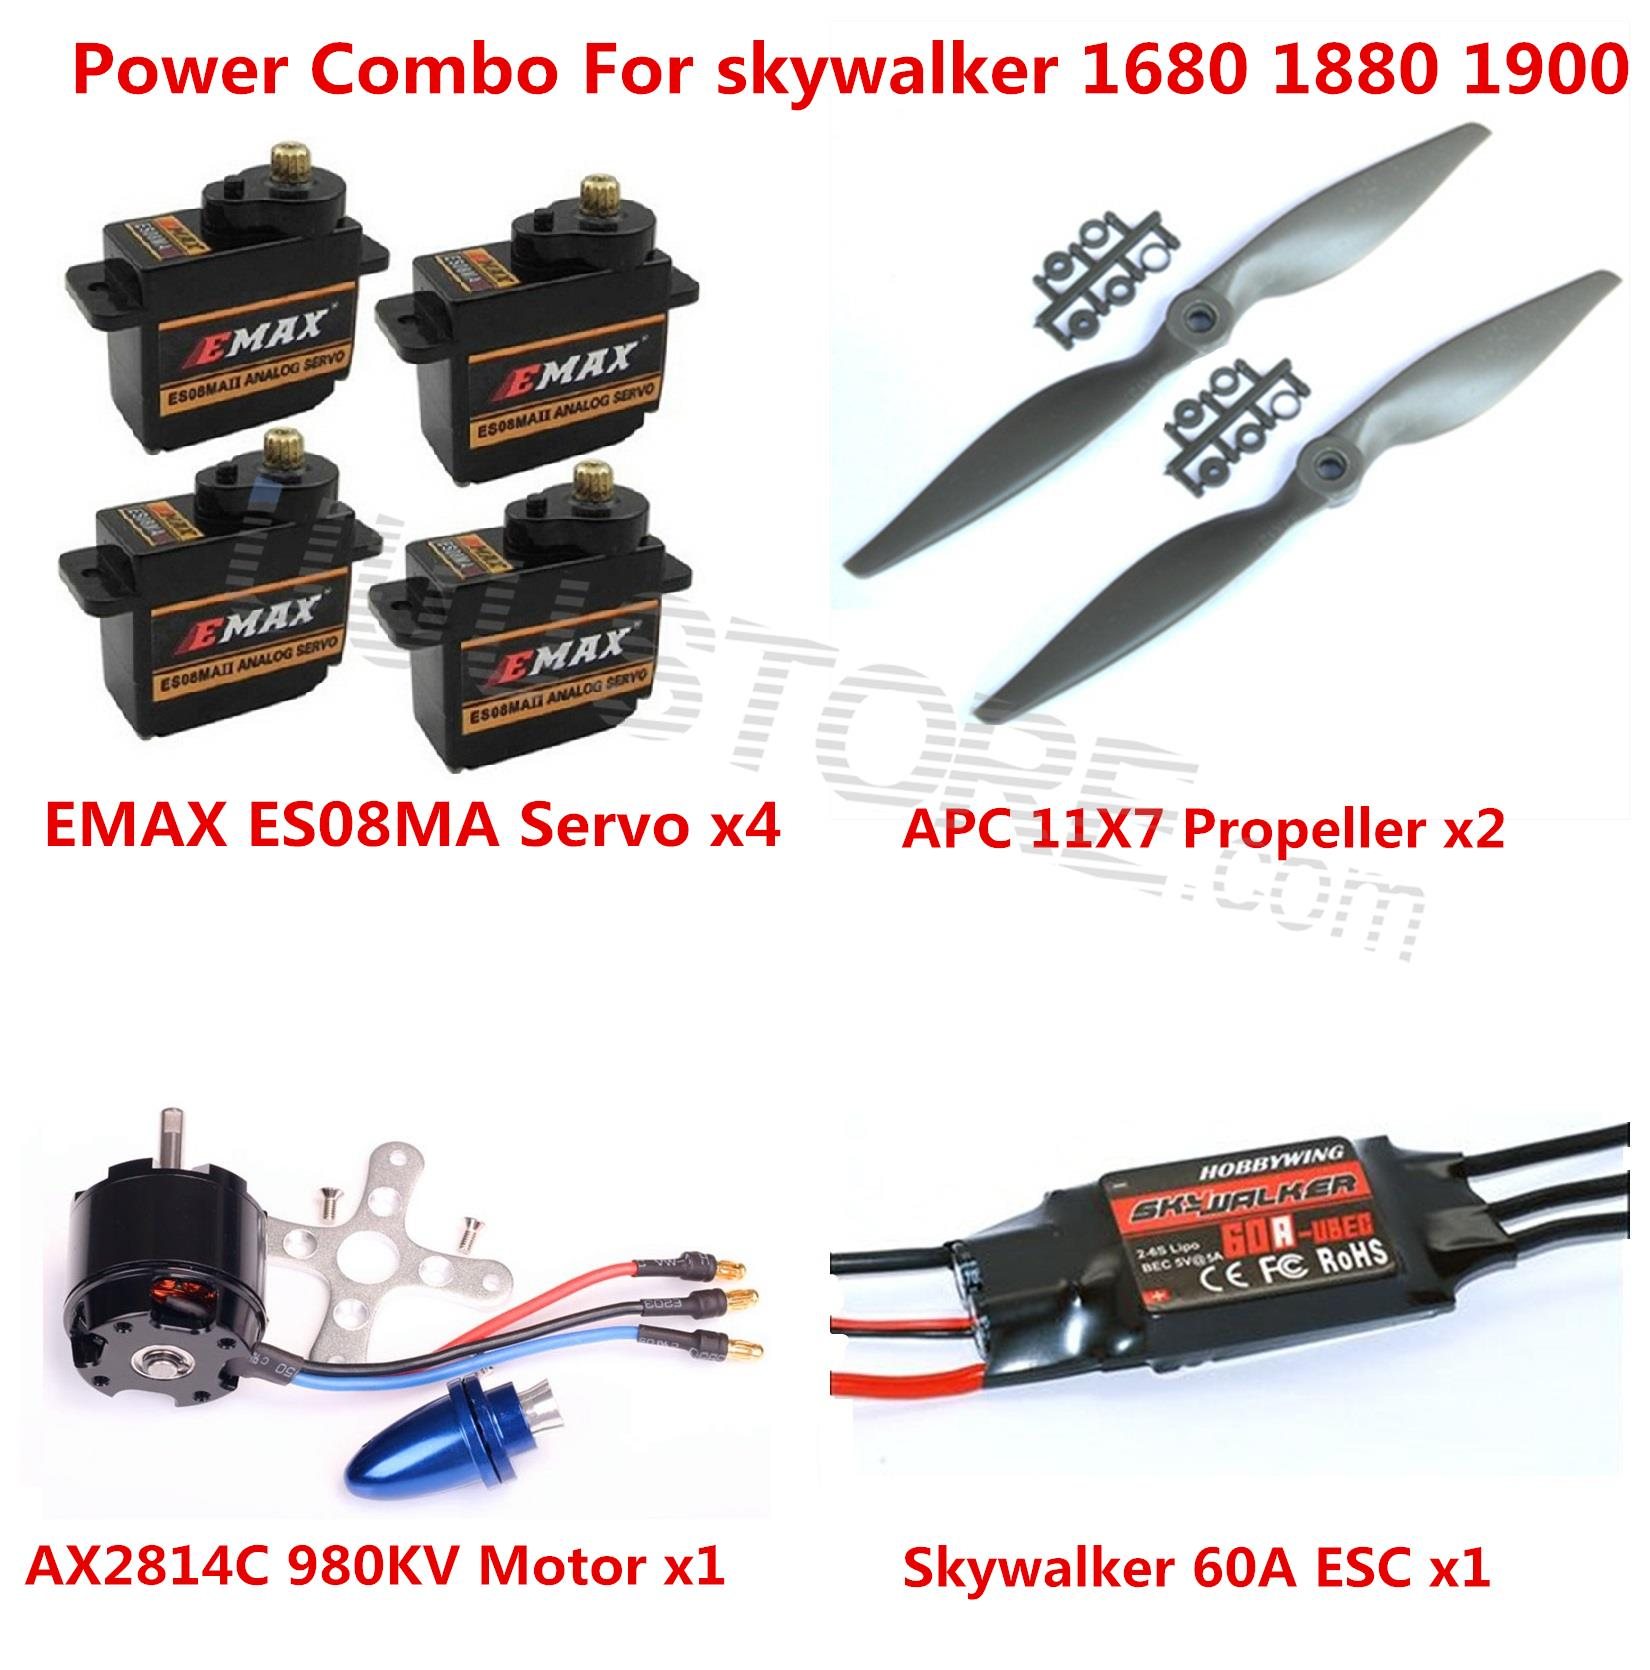 Power Combo Kit For Skywalker 1680 1880 1900 EPO RC Airplane Motor ESC Props and Servos skywalker parachute landing umbrella 5 8kg for skywalker x8 x7 3 5kg for skywalker x5